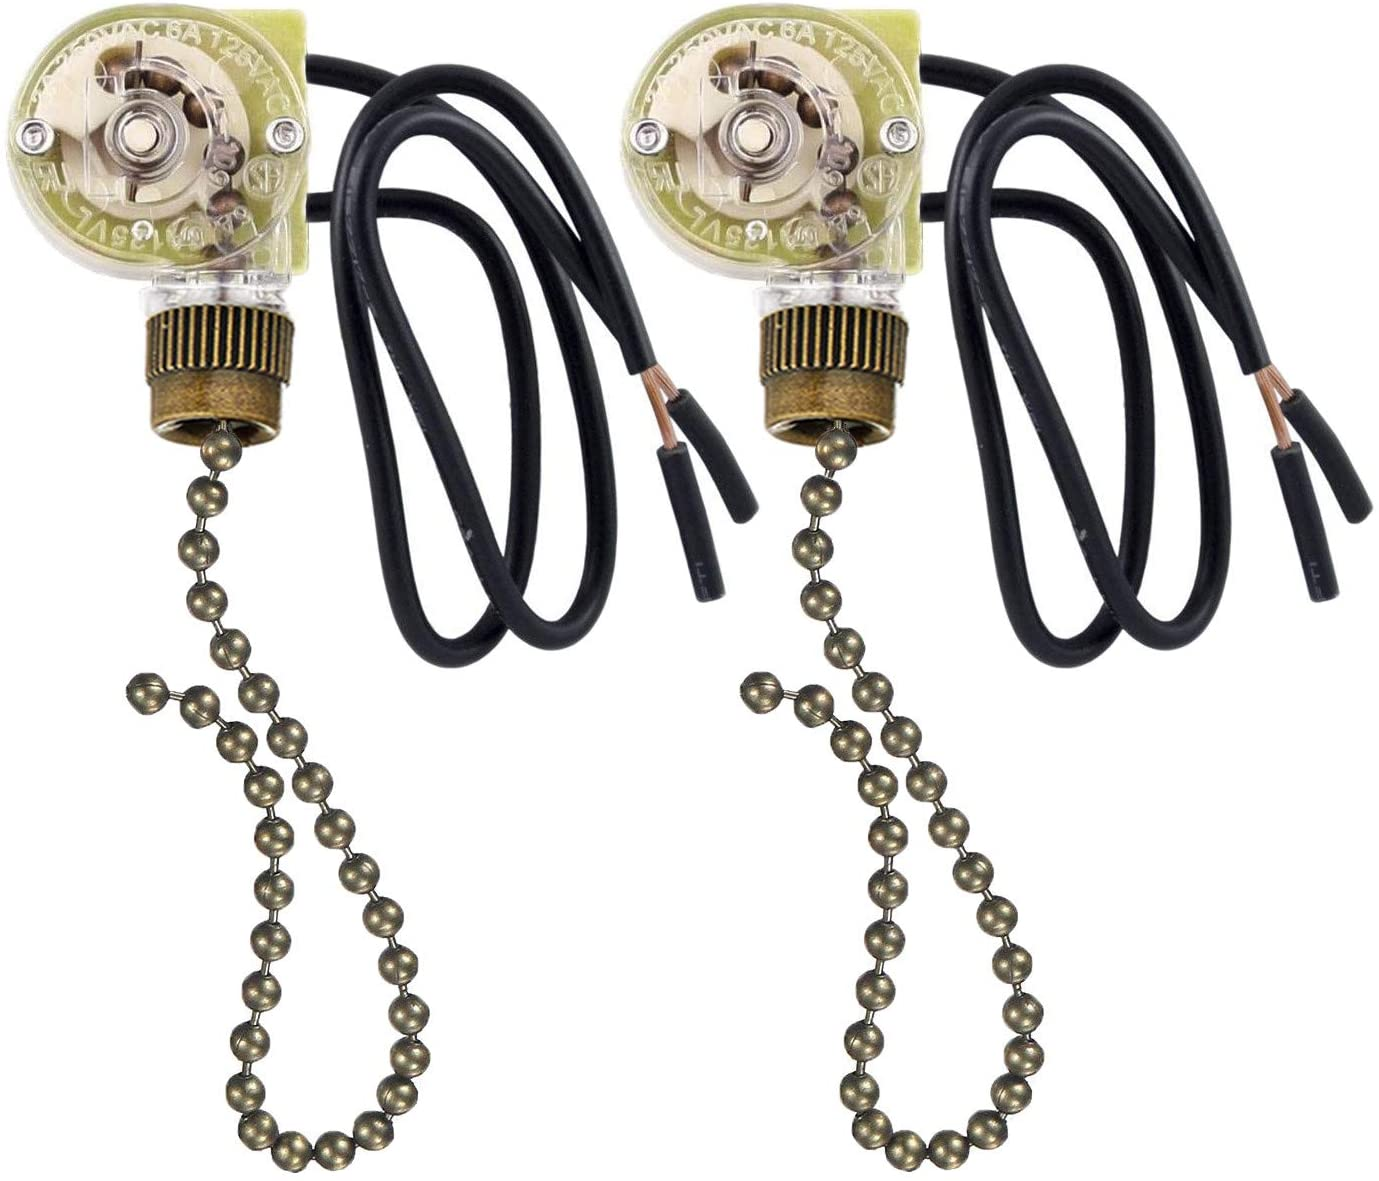 2 Pack Fan-Light Switch & Pull Chain, Electrical Pull Chain Switch, ON-Off, 6 A/125V AC, 6 inch Wire Terminal (Antique Brass Pull Chain) - -